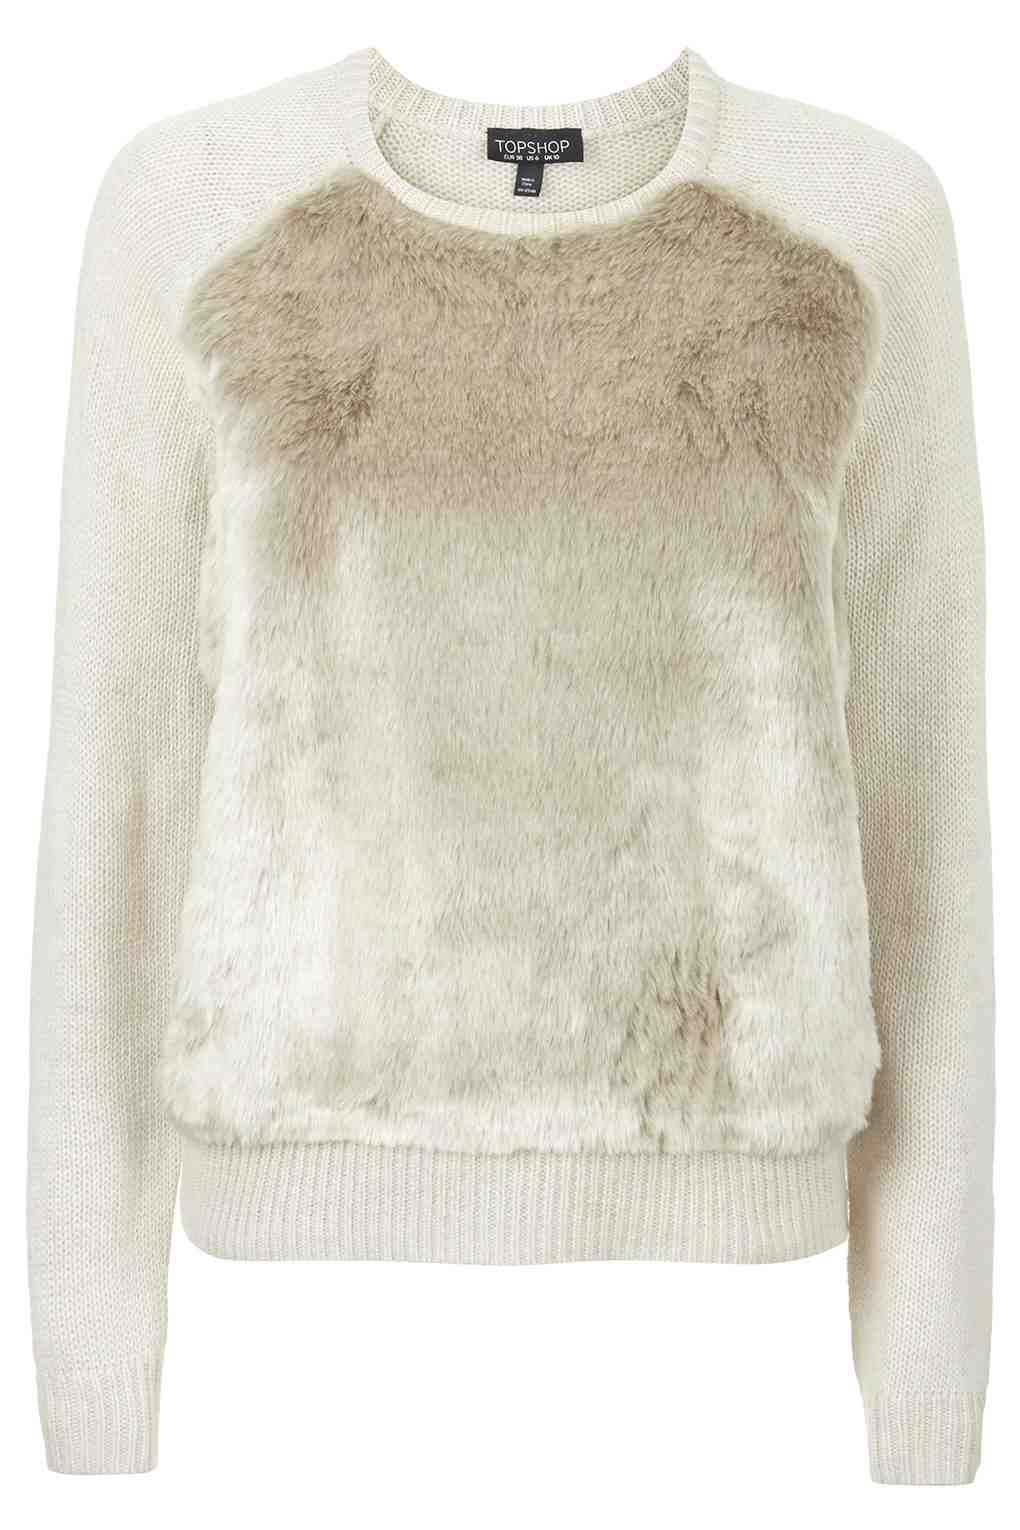 Topshop - Pull(64 €)